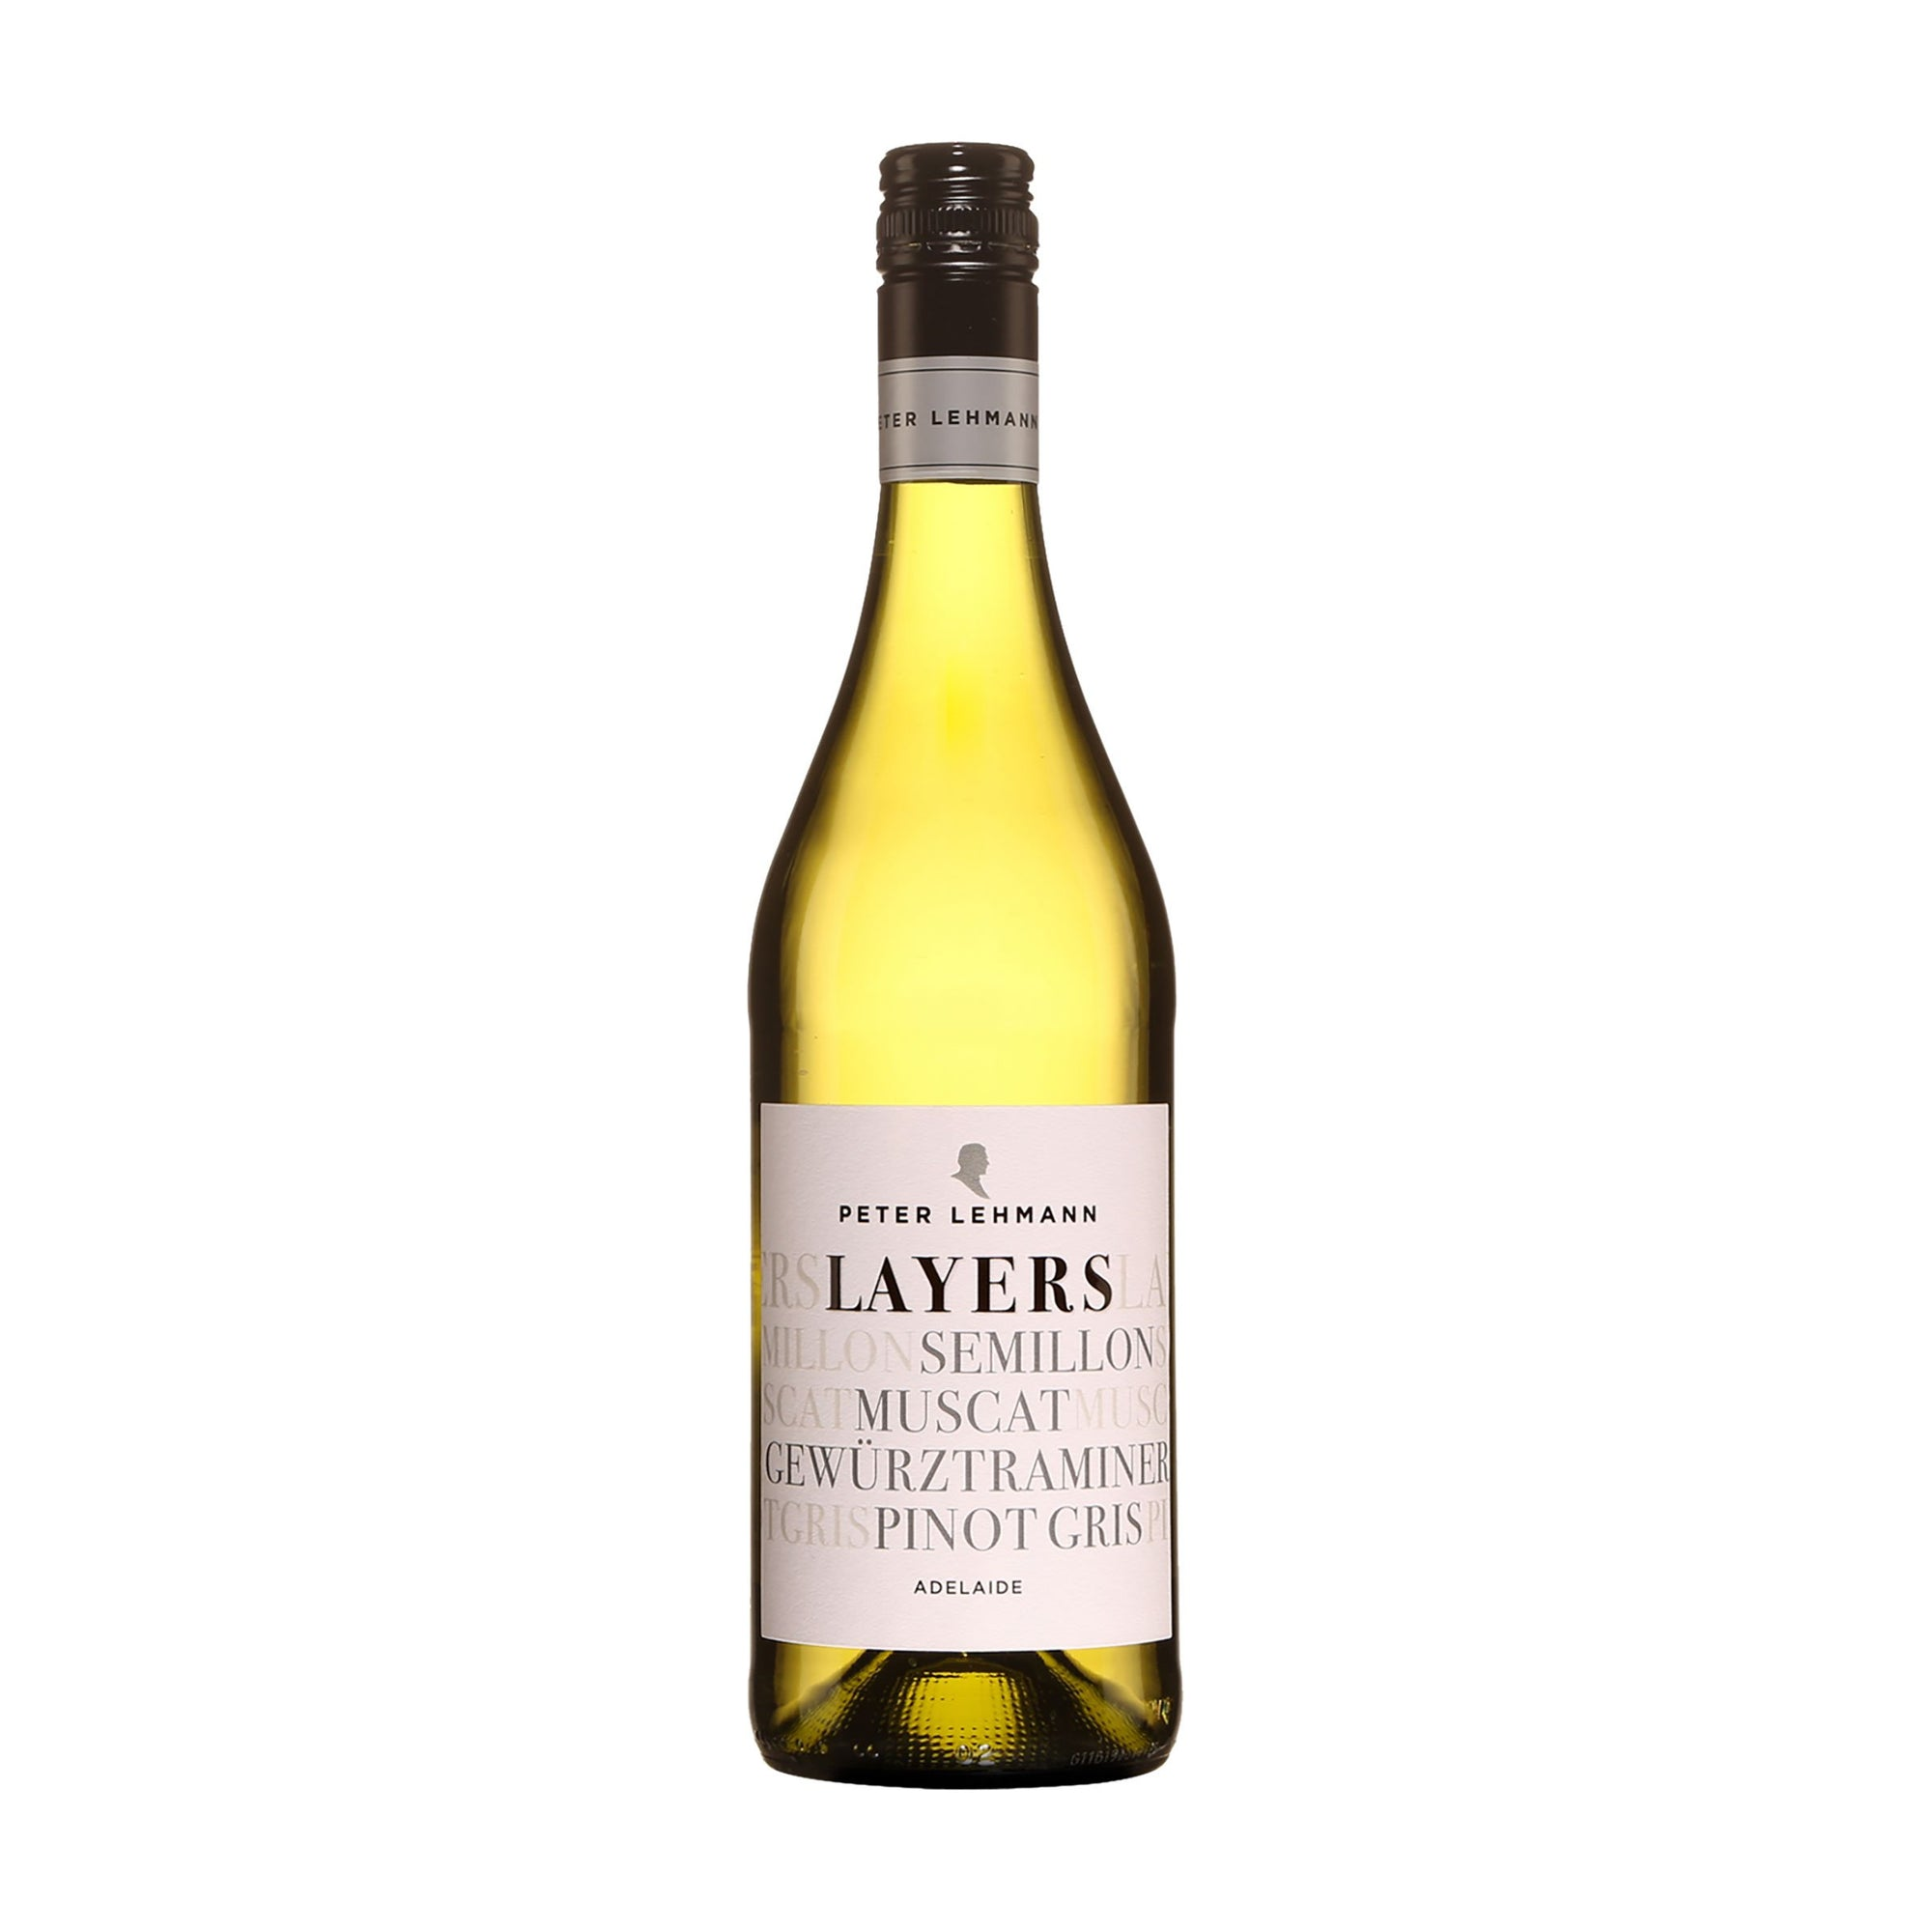 White Wine Peter Lehmann 'Layers' Adelaide White 2019 (4390879854615)